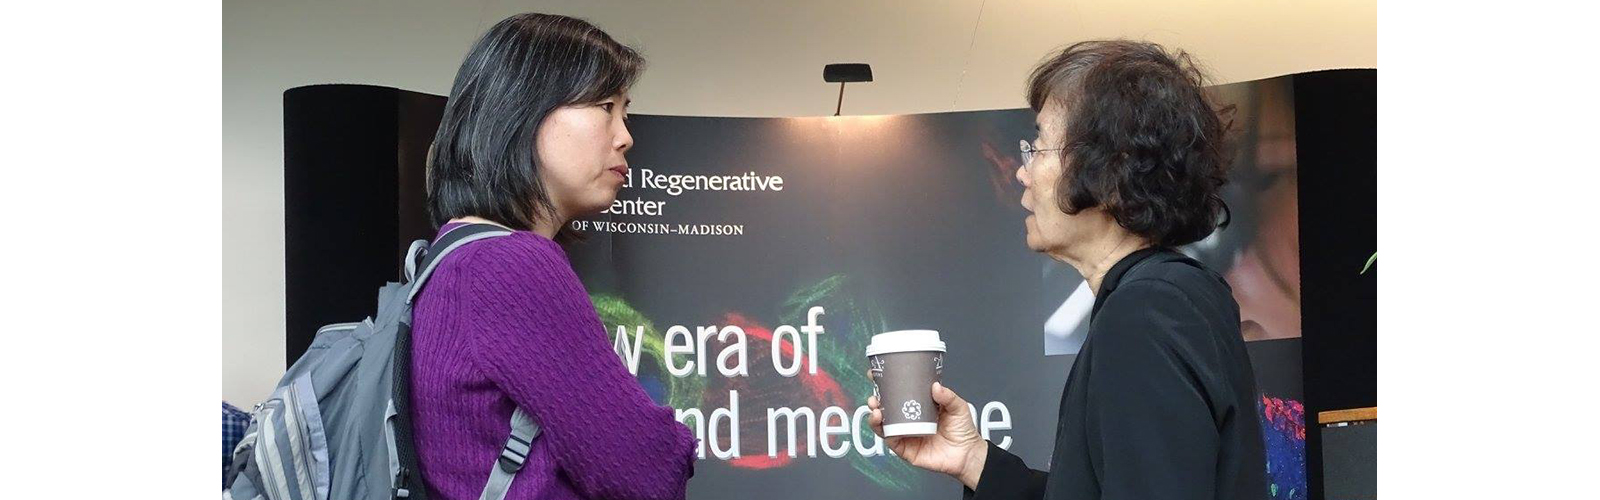 Xinyu Zhao and Ei Terasawa at Wisconsin Stem Cell Symposium